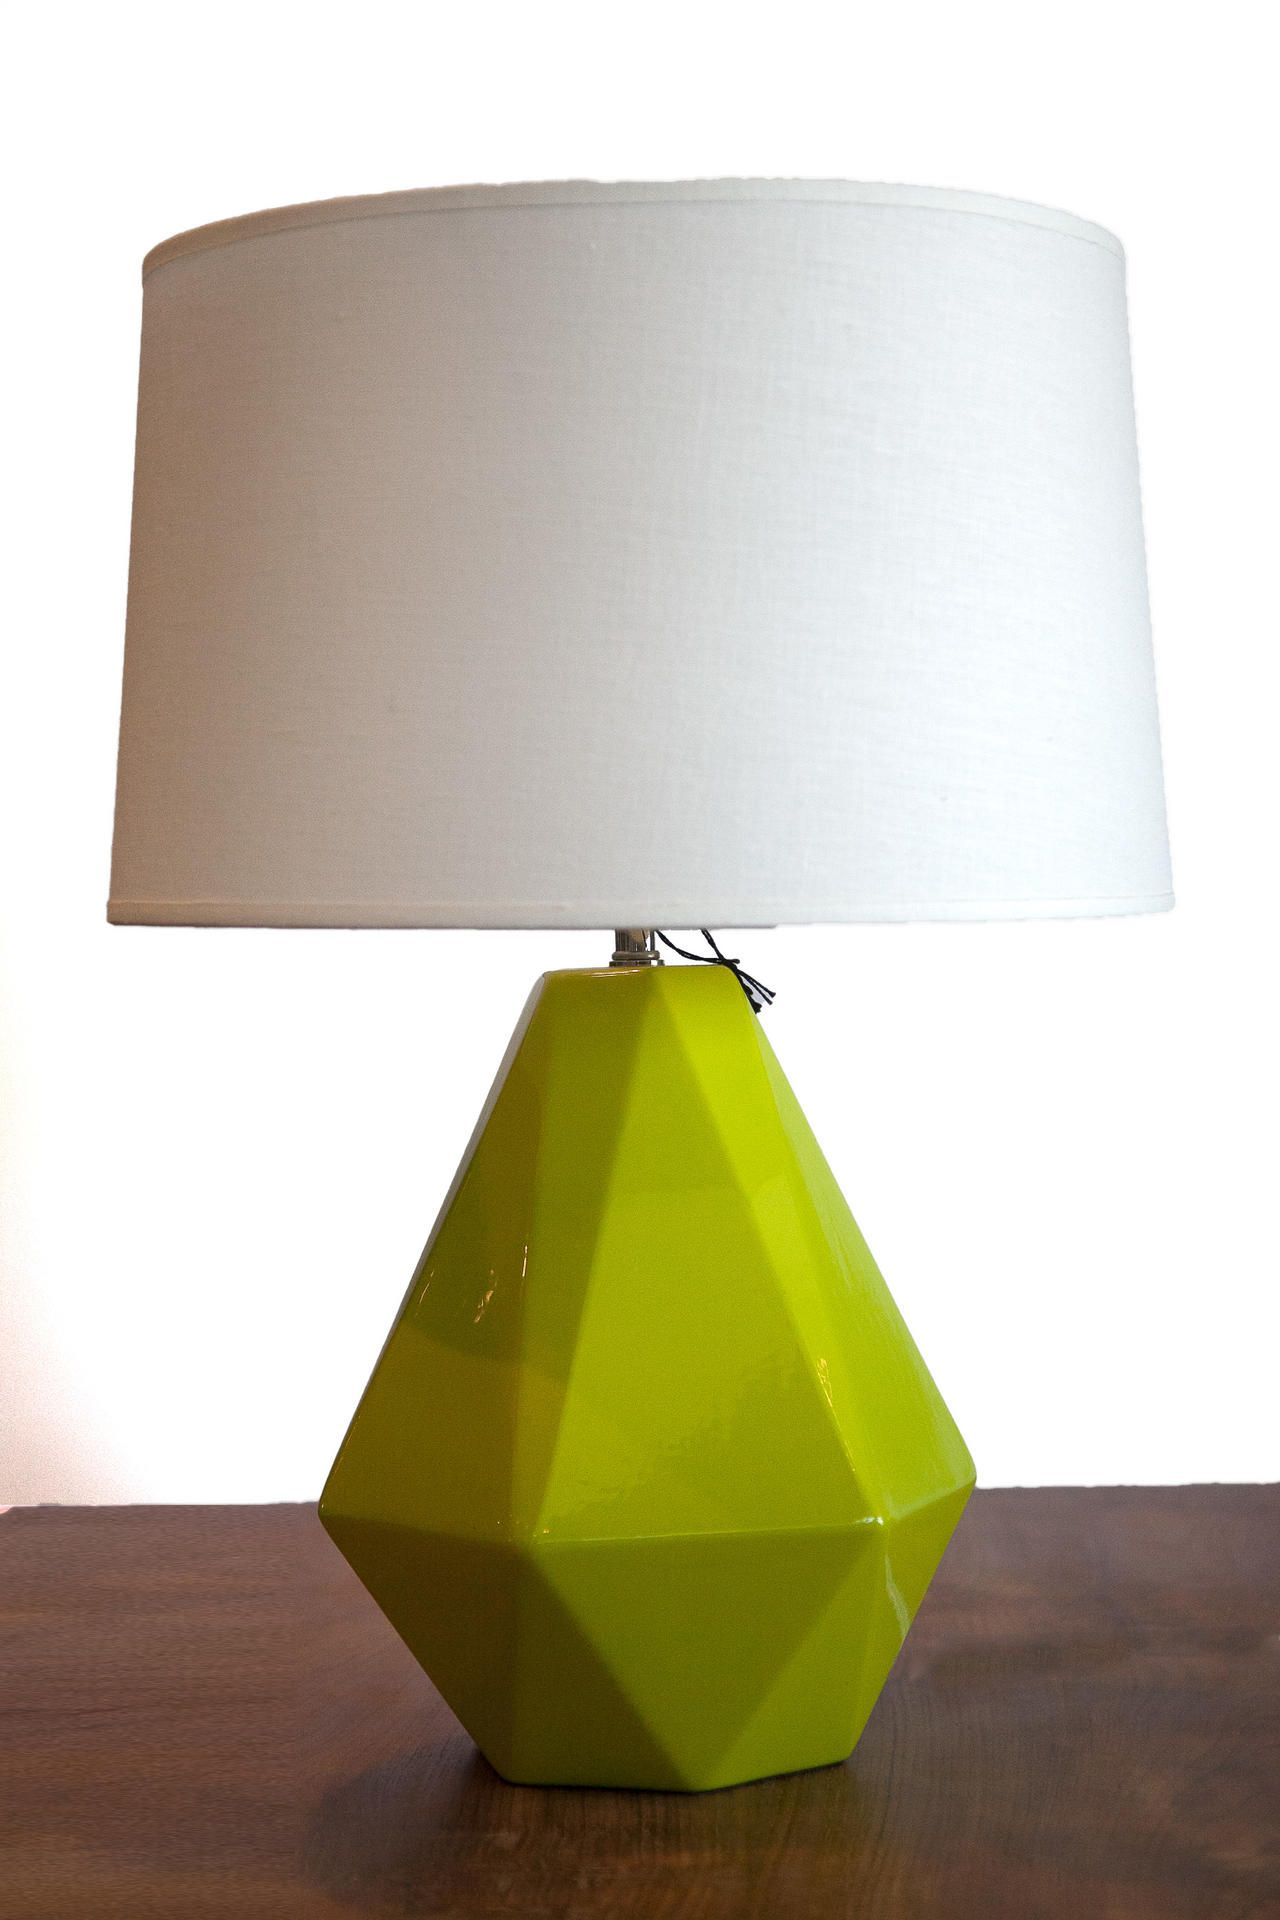 robert abbey lamp fleapop buy and sell home decor furniture and